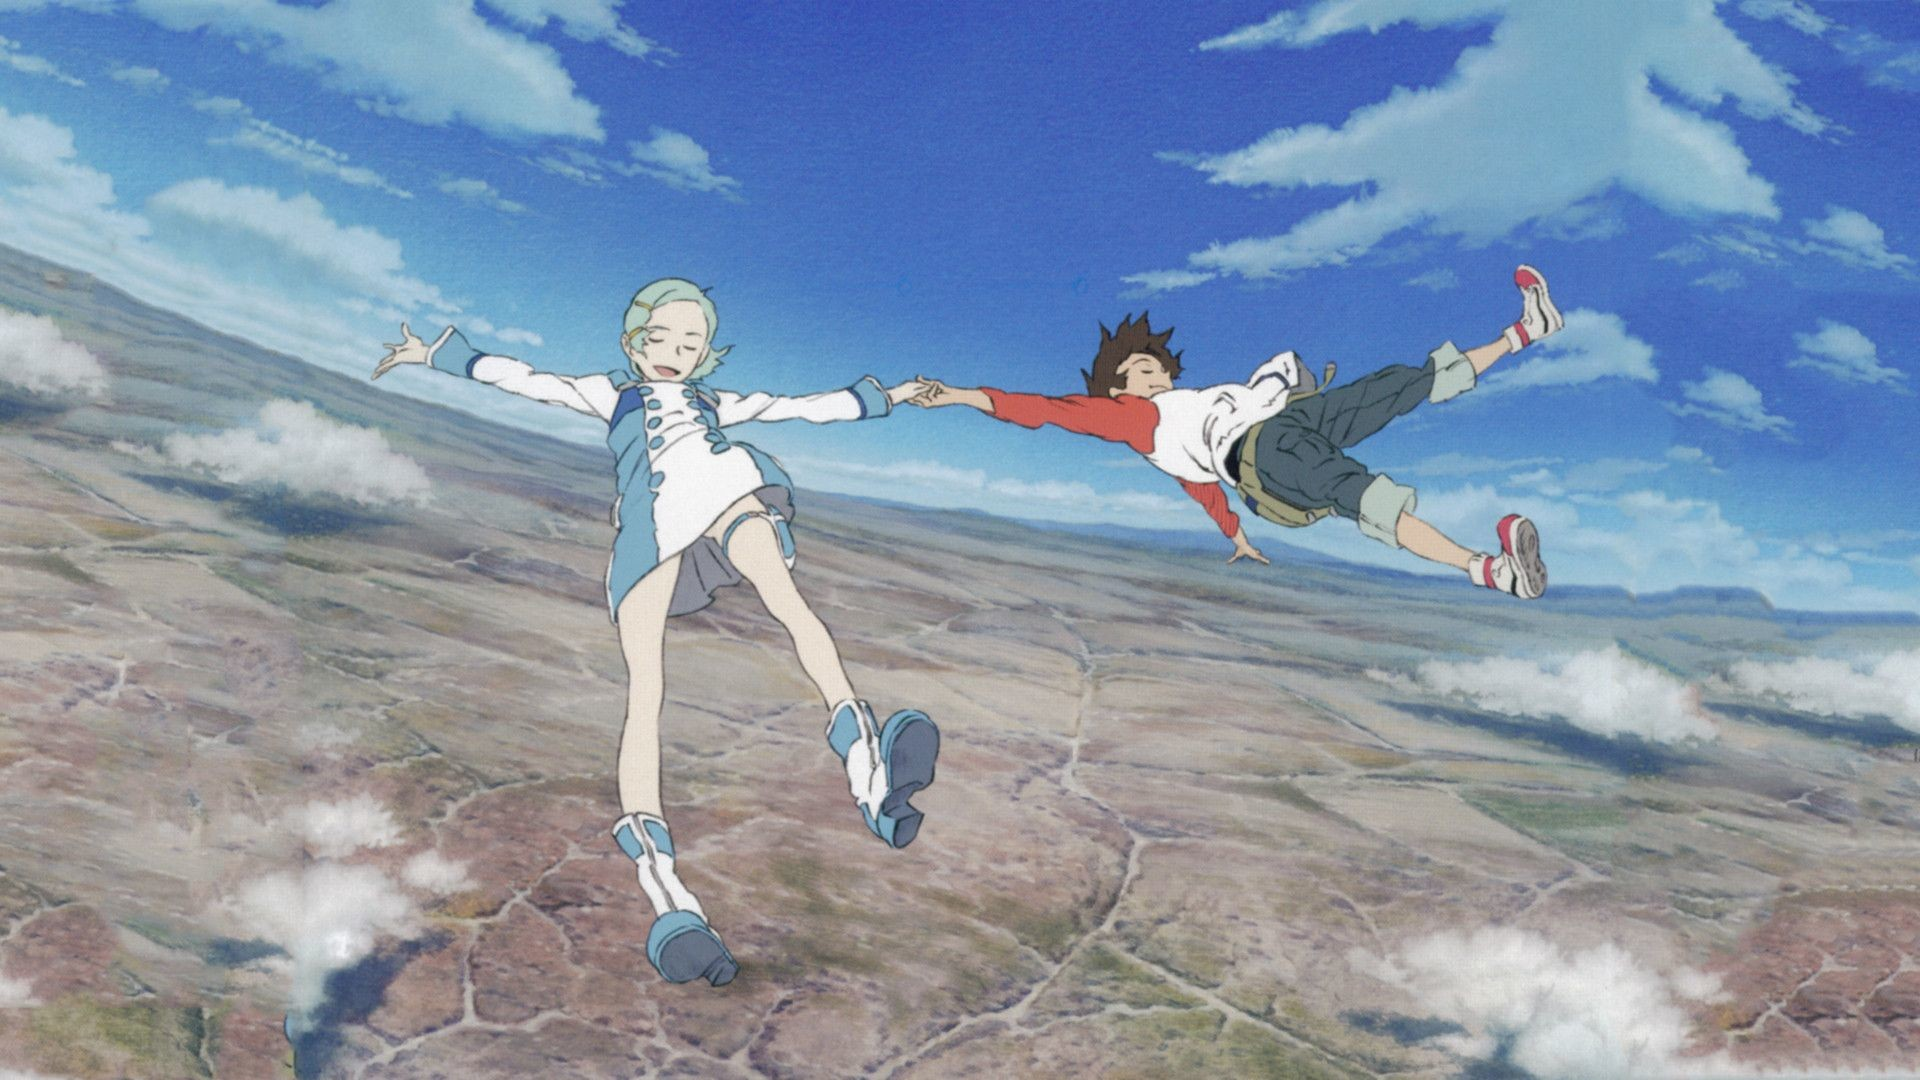 Res: 1920x1080, Eureka Seven Wallpaper // Renton and Eureka